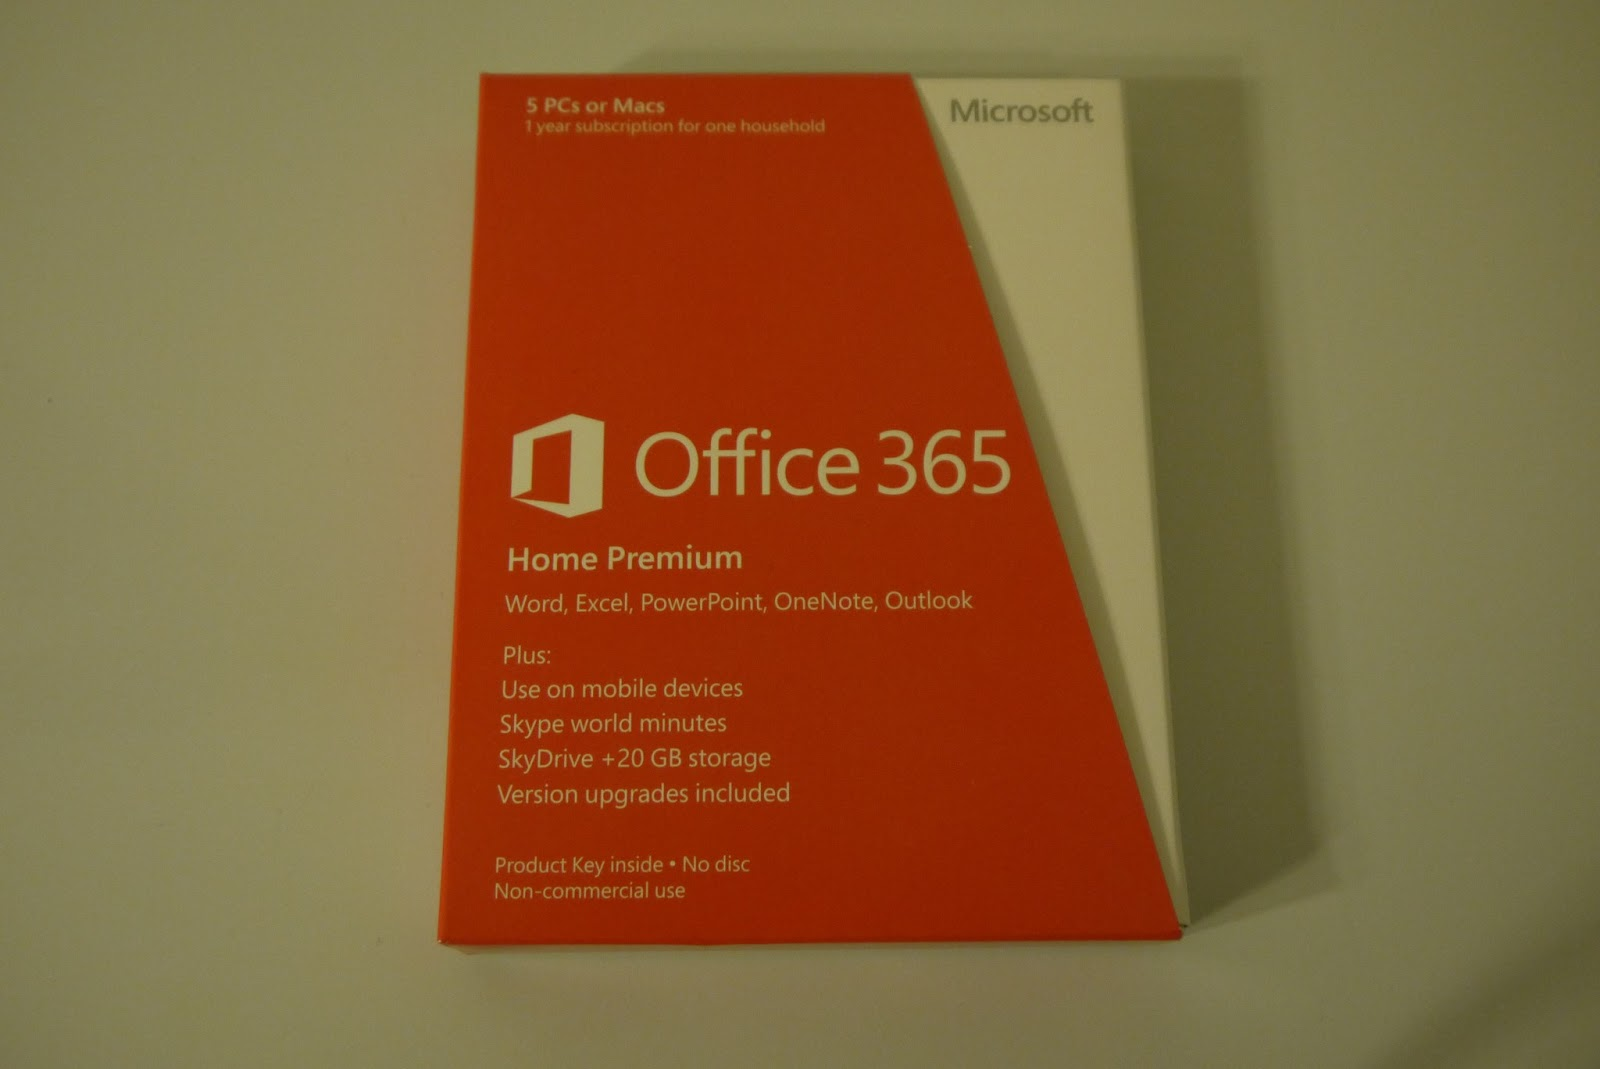 Soul of a Geek: What I Use: Microsoft Office 365 Home Premium